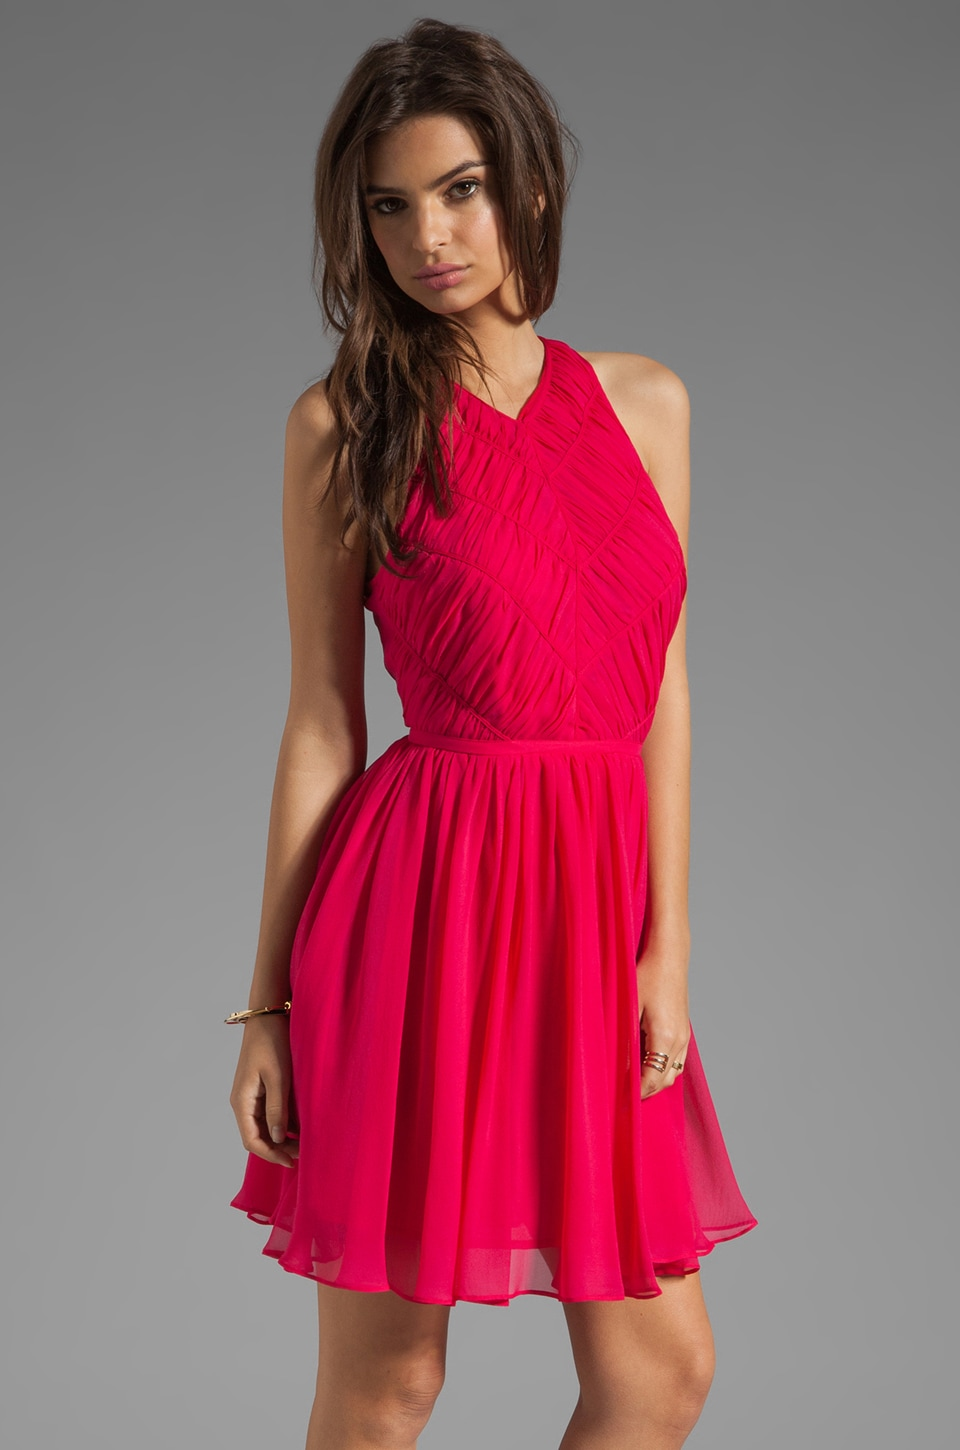 Zimmermann Independent Rouched Dress in Ruby